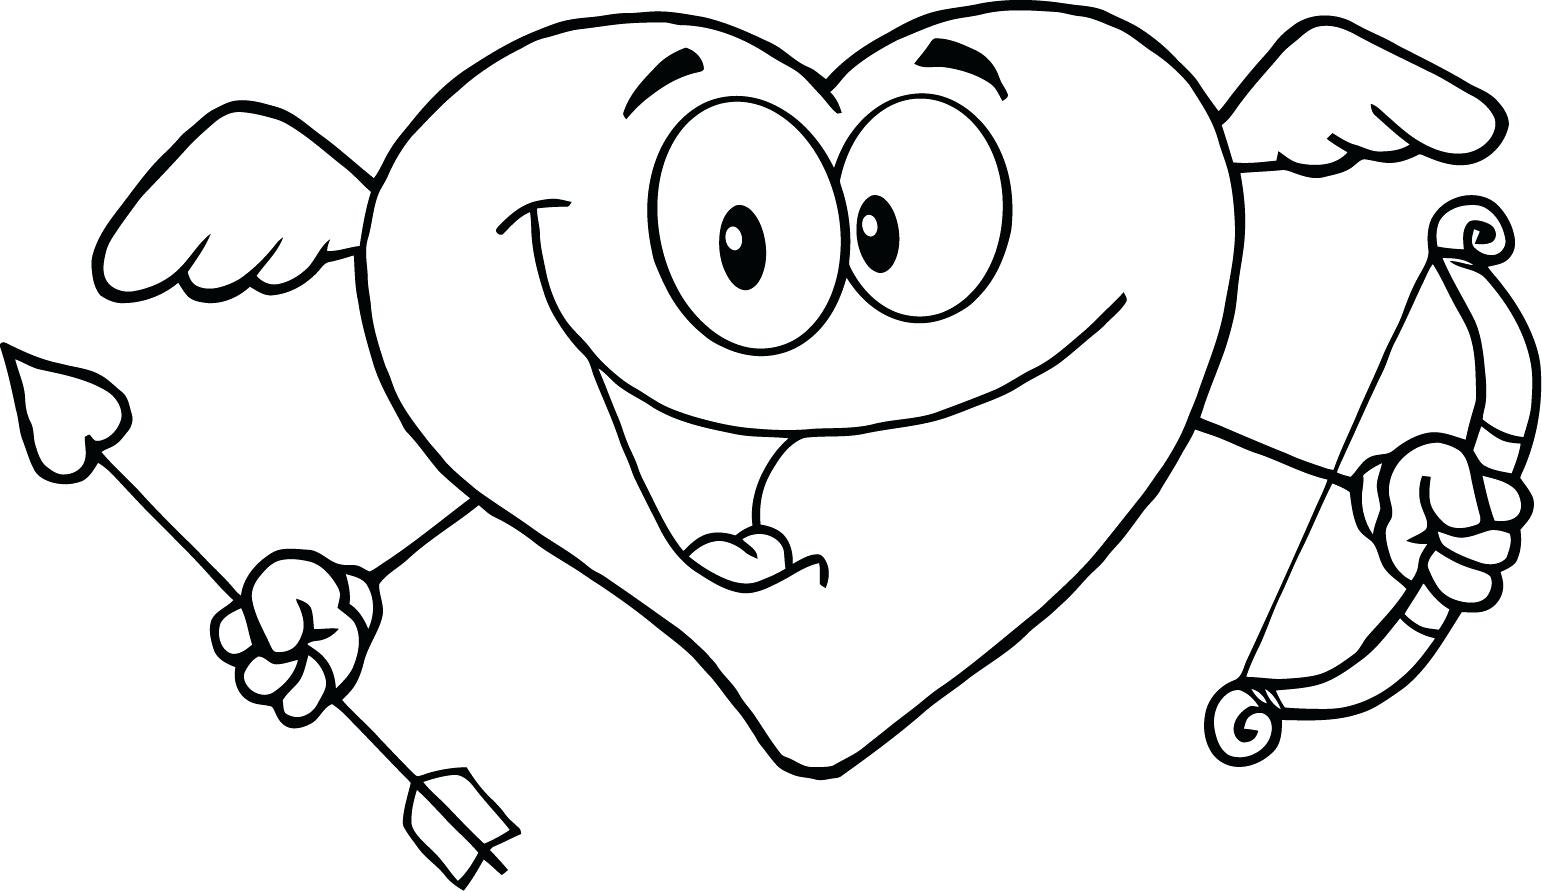 1542x891 Love Heart Coloring Sheets Free Printable Pages For Kids Of Hearts